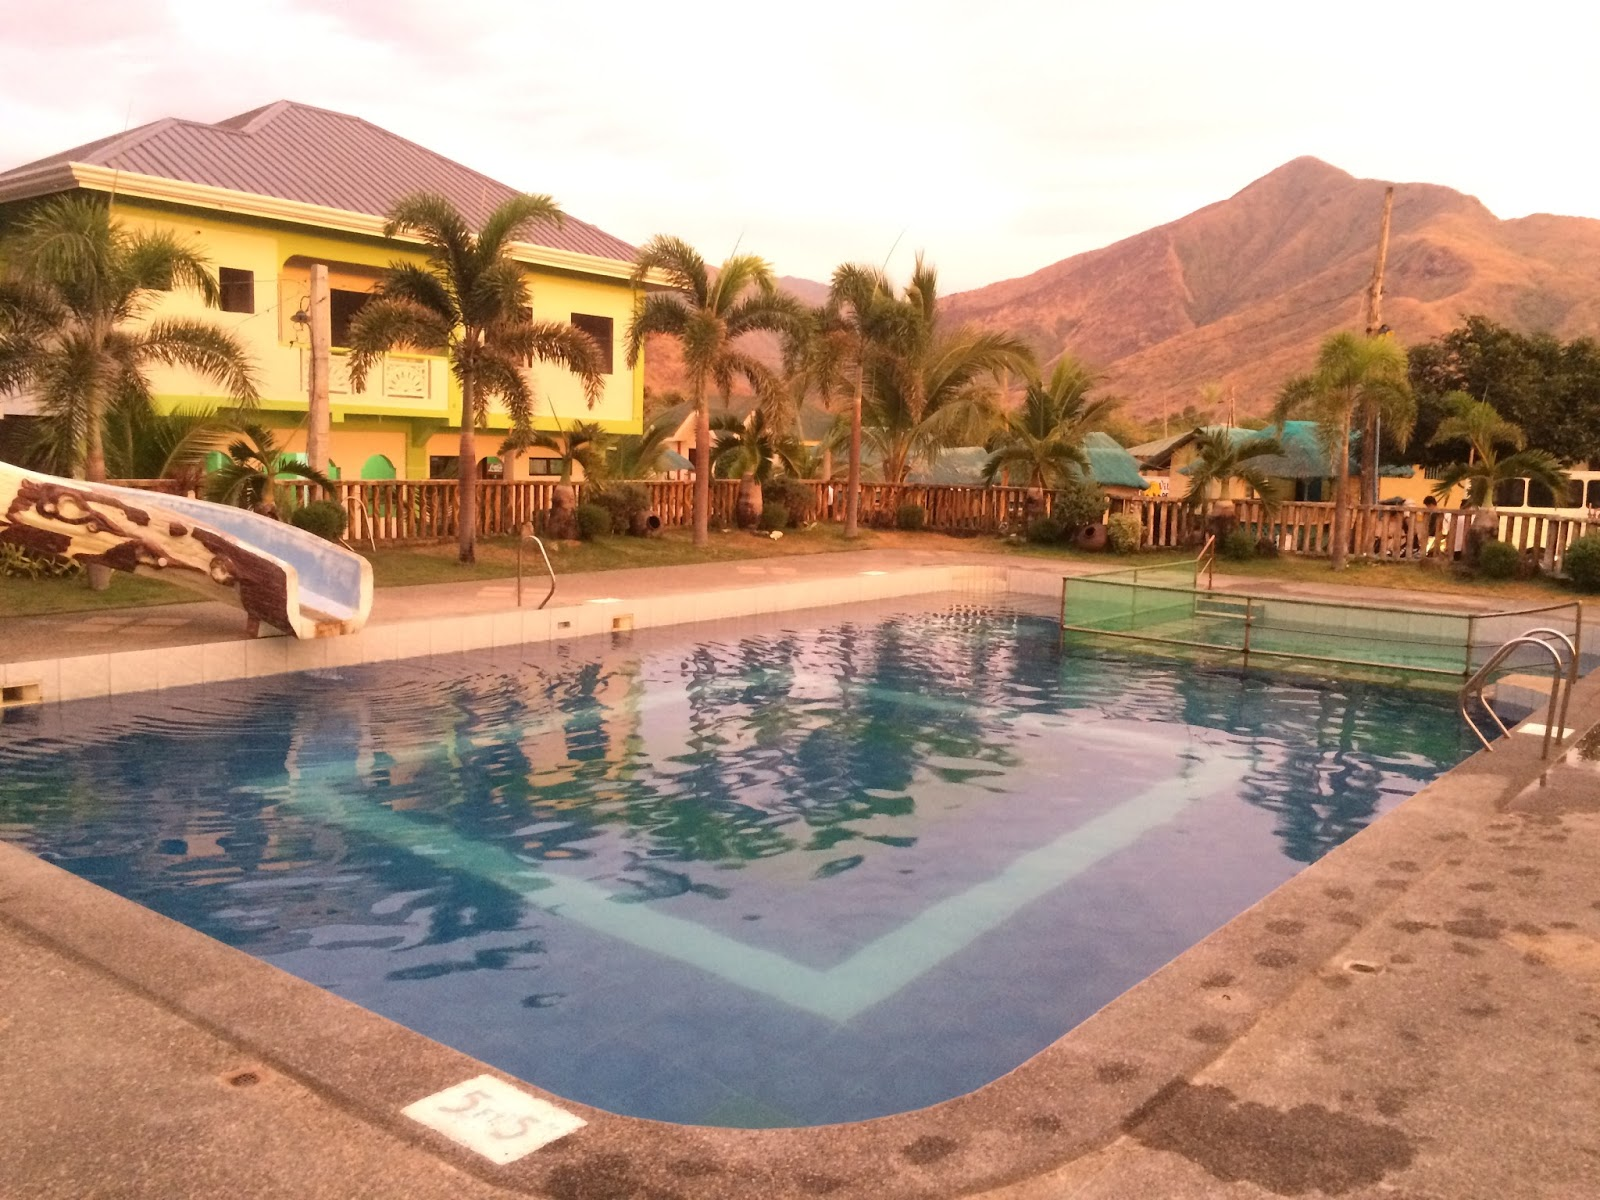 san antonio zambales beach resort the best beaches in pictures of villa fe resort zambales